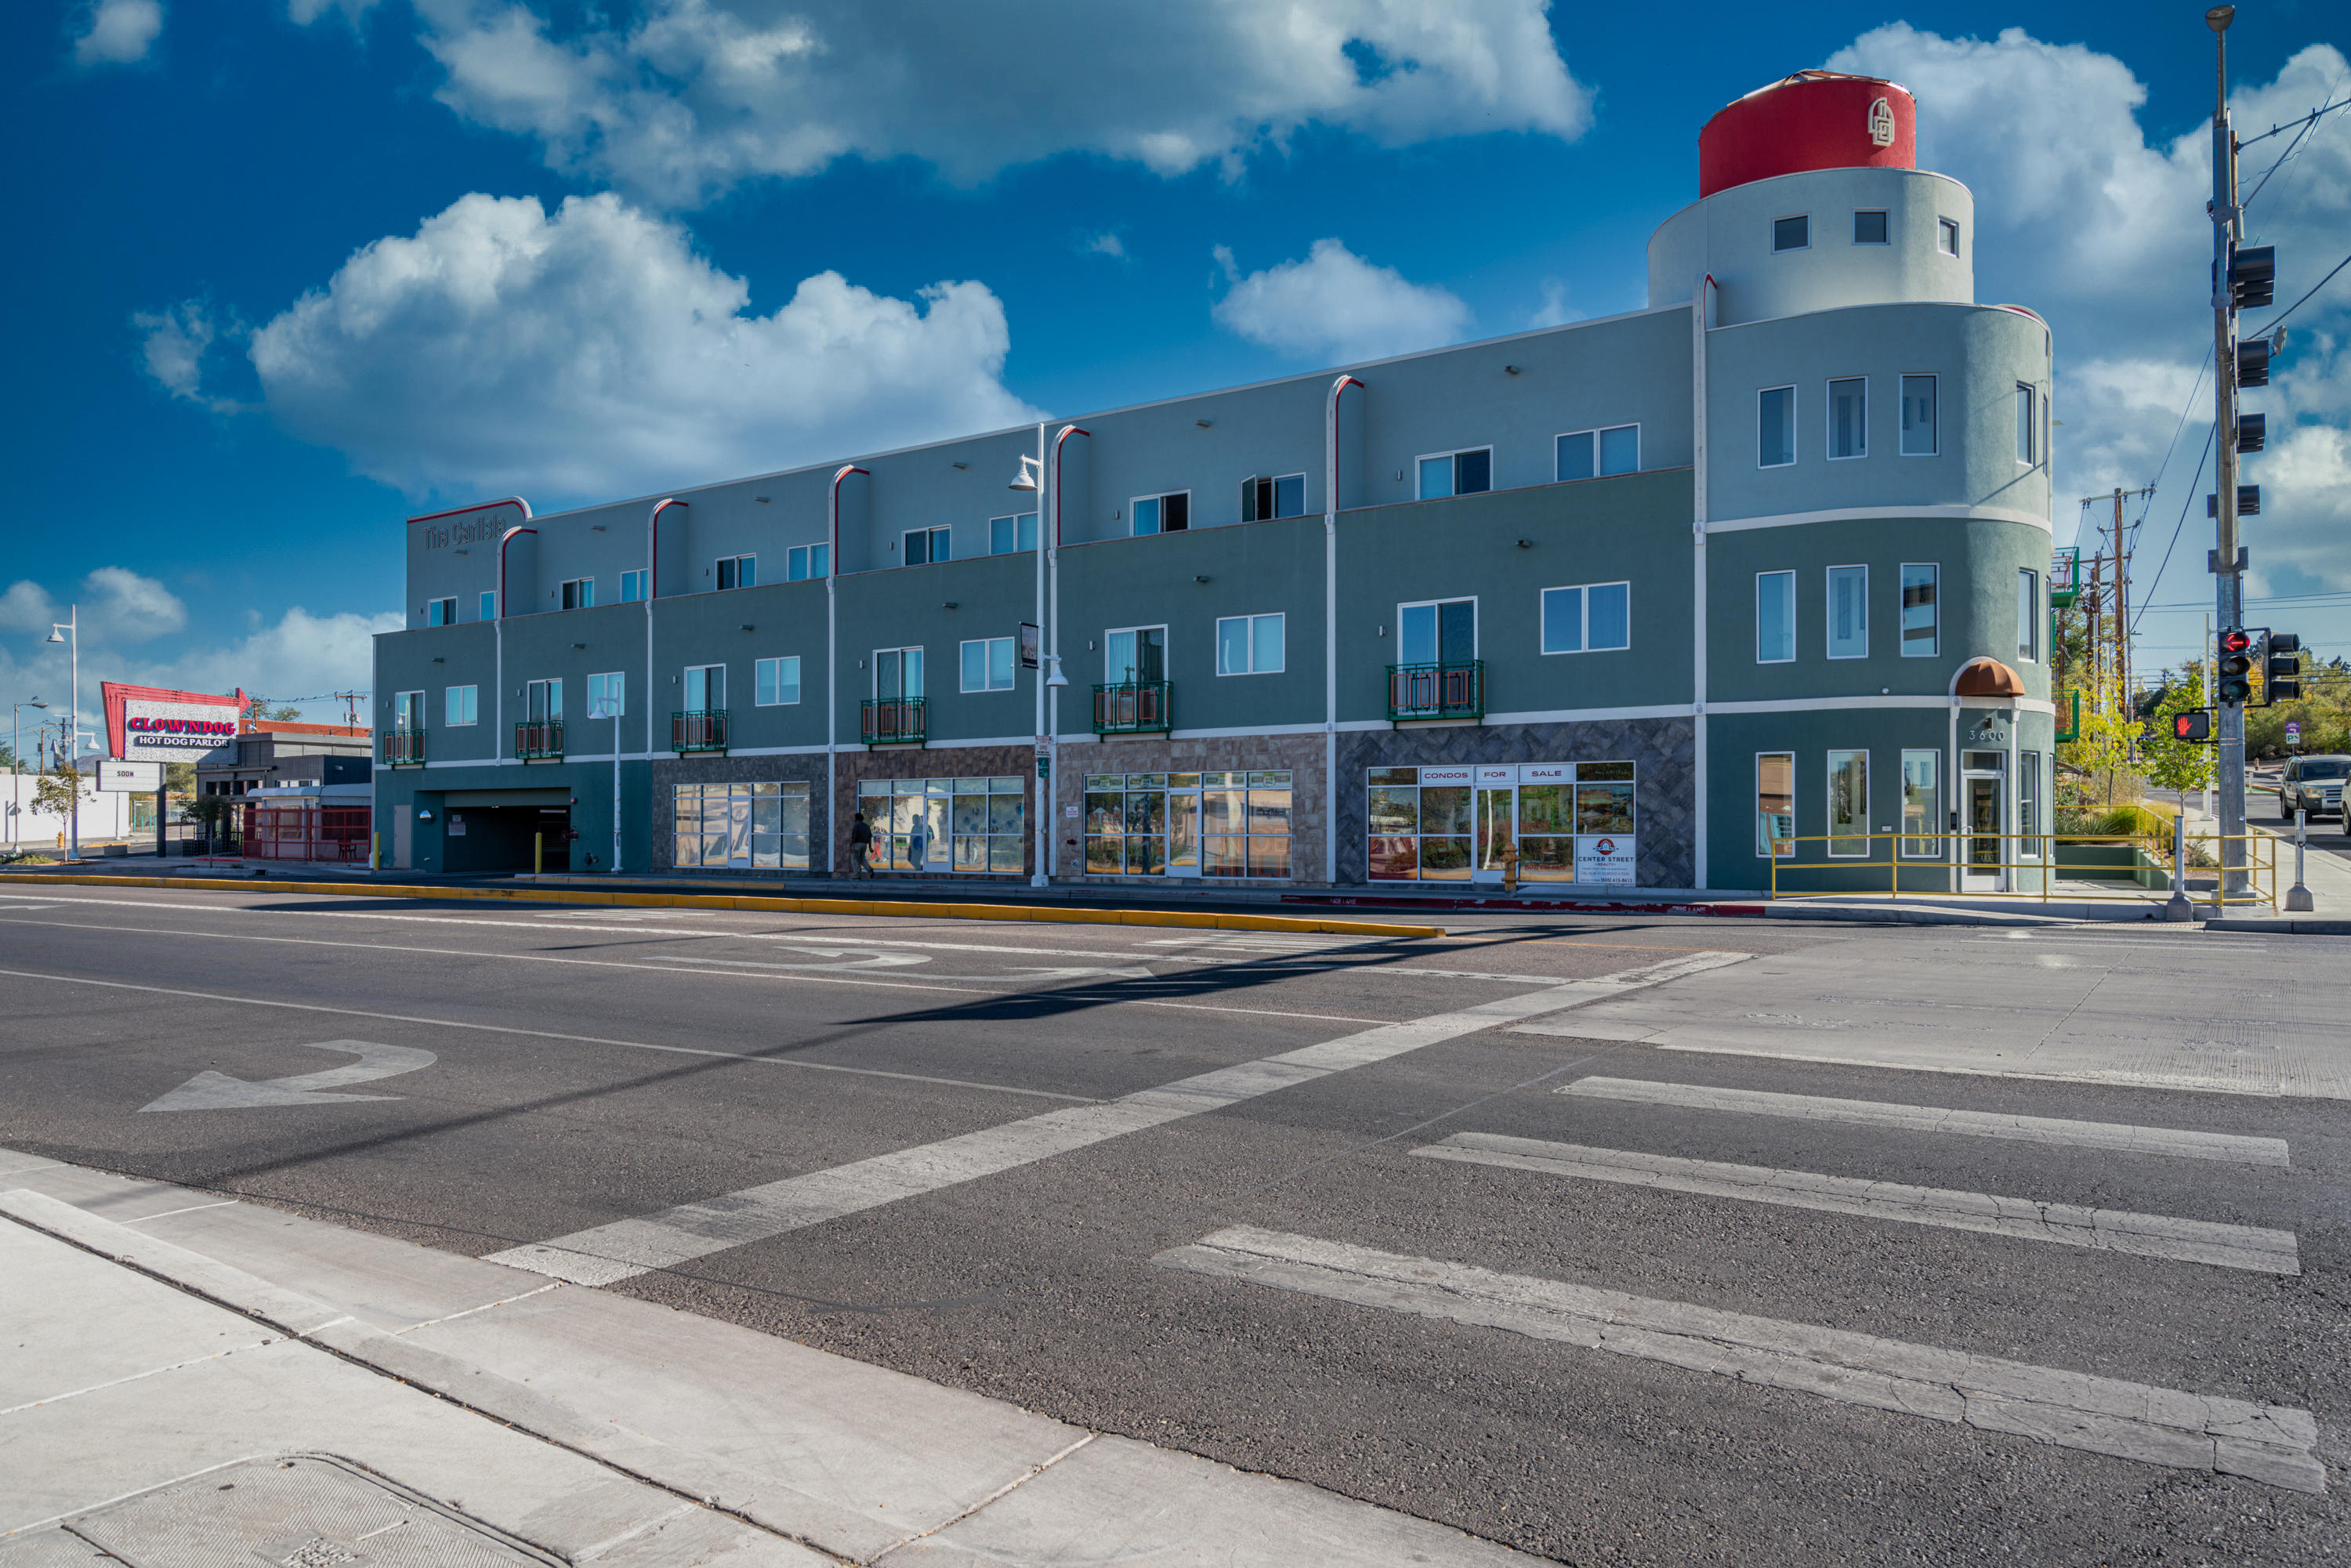 Here is a  beautiful one level condo located on historic Route 66 in the award winning Carlisle Condominiums. Nob Hill just steps away provides you  with  restaurants, breweries, retail shops, and a local co-op grocery store Natural light embraces the modern colors selected for the walls, counters and cabinets  Enjoy ultra efficient LG state of the art HVAC. Quartz counters and Kohler plumbing fixtures. JennAir Designer Series appliances in the kitchen. 2 master suites with large bathrooms and closets.Weather Shield windows and doors, and it's soundproofed with AcousticBlok.   Secure Underground Parking,Full ADA Accessibility. A rooftop terrace provides an  outstanding view of city lights and the  Sandia Mountains. Experience your community in the  Common Area Garden w/ Wat